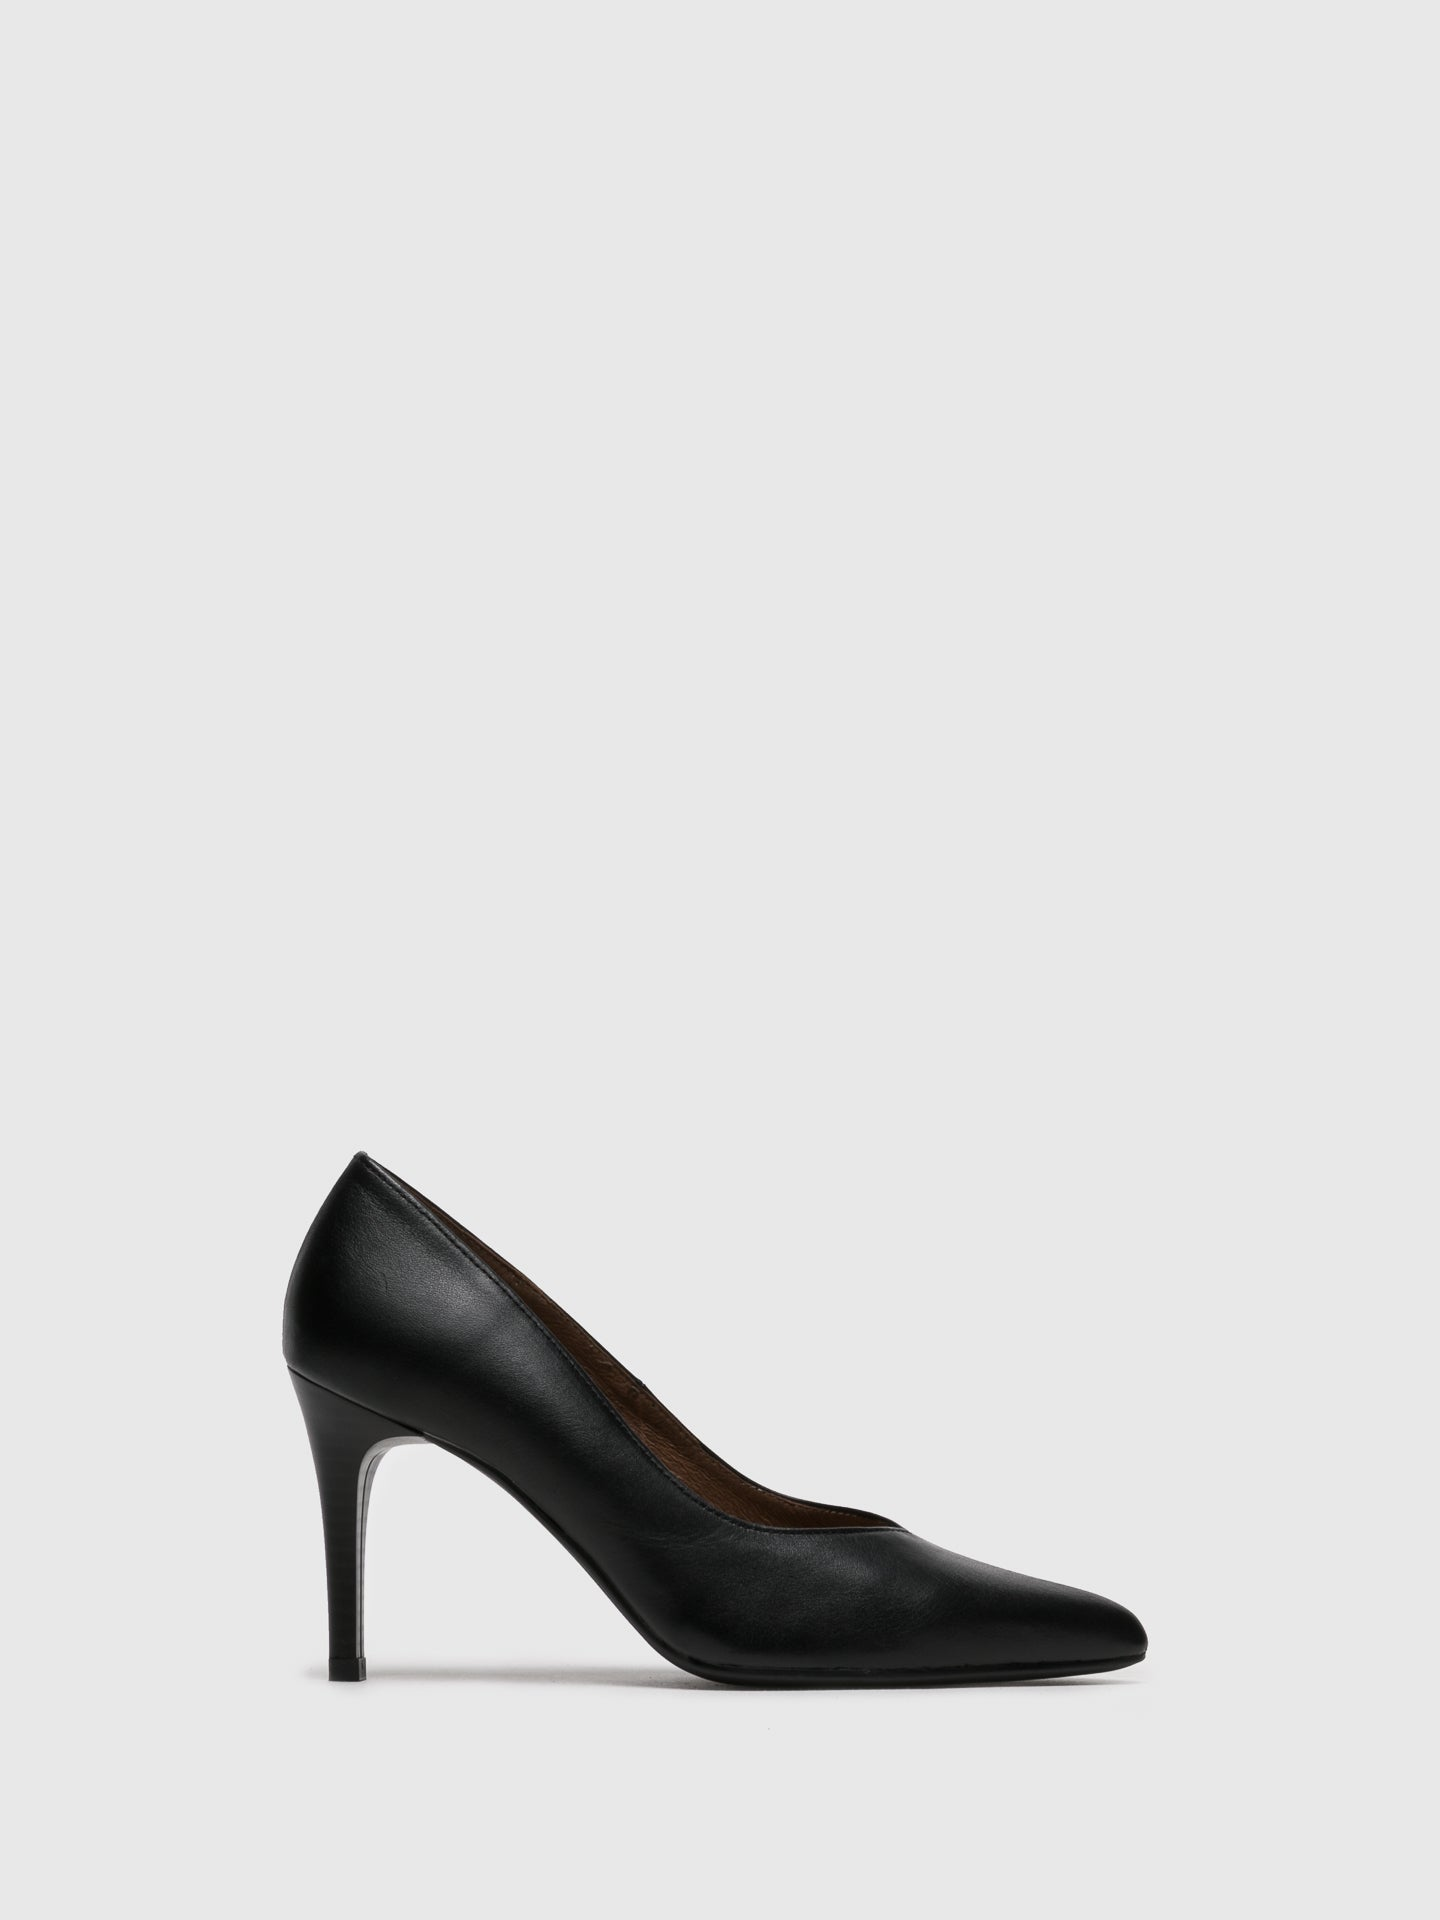 Foreva Black Pointed Toe Pumps